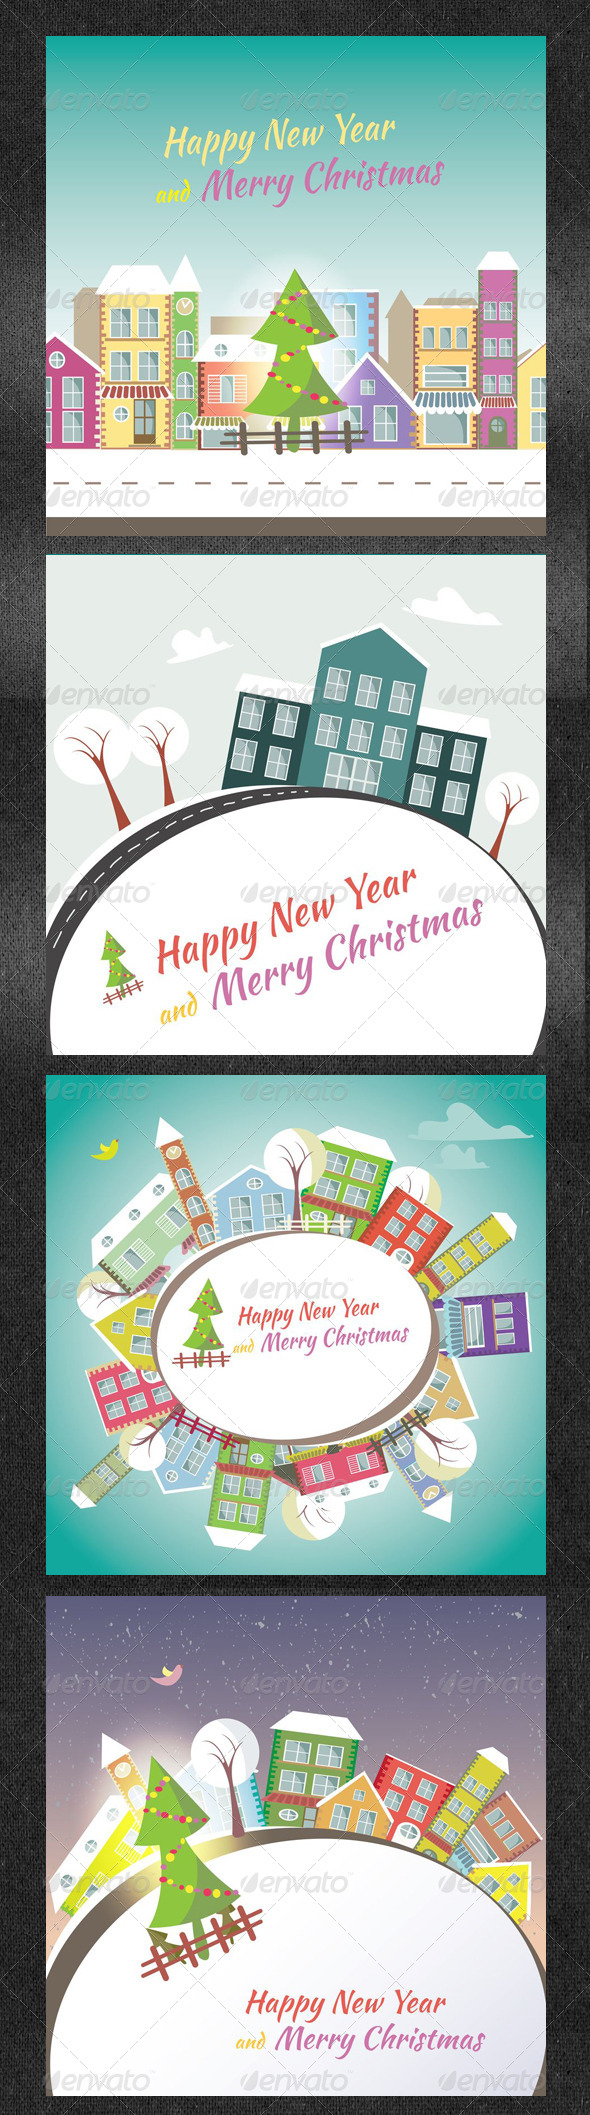 GraphicRiver Happy New Year Greeting Card 5985605